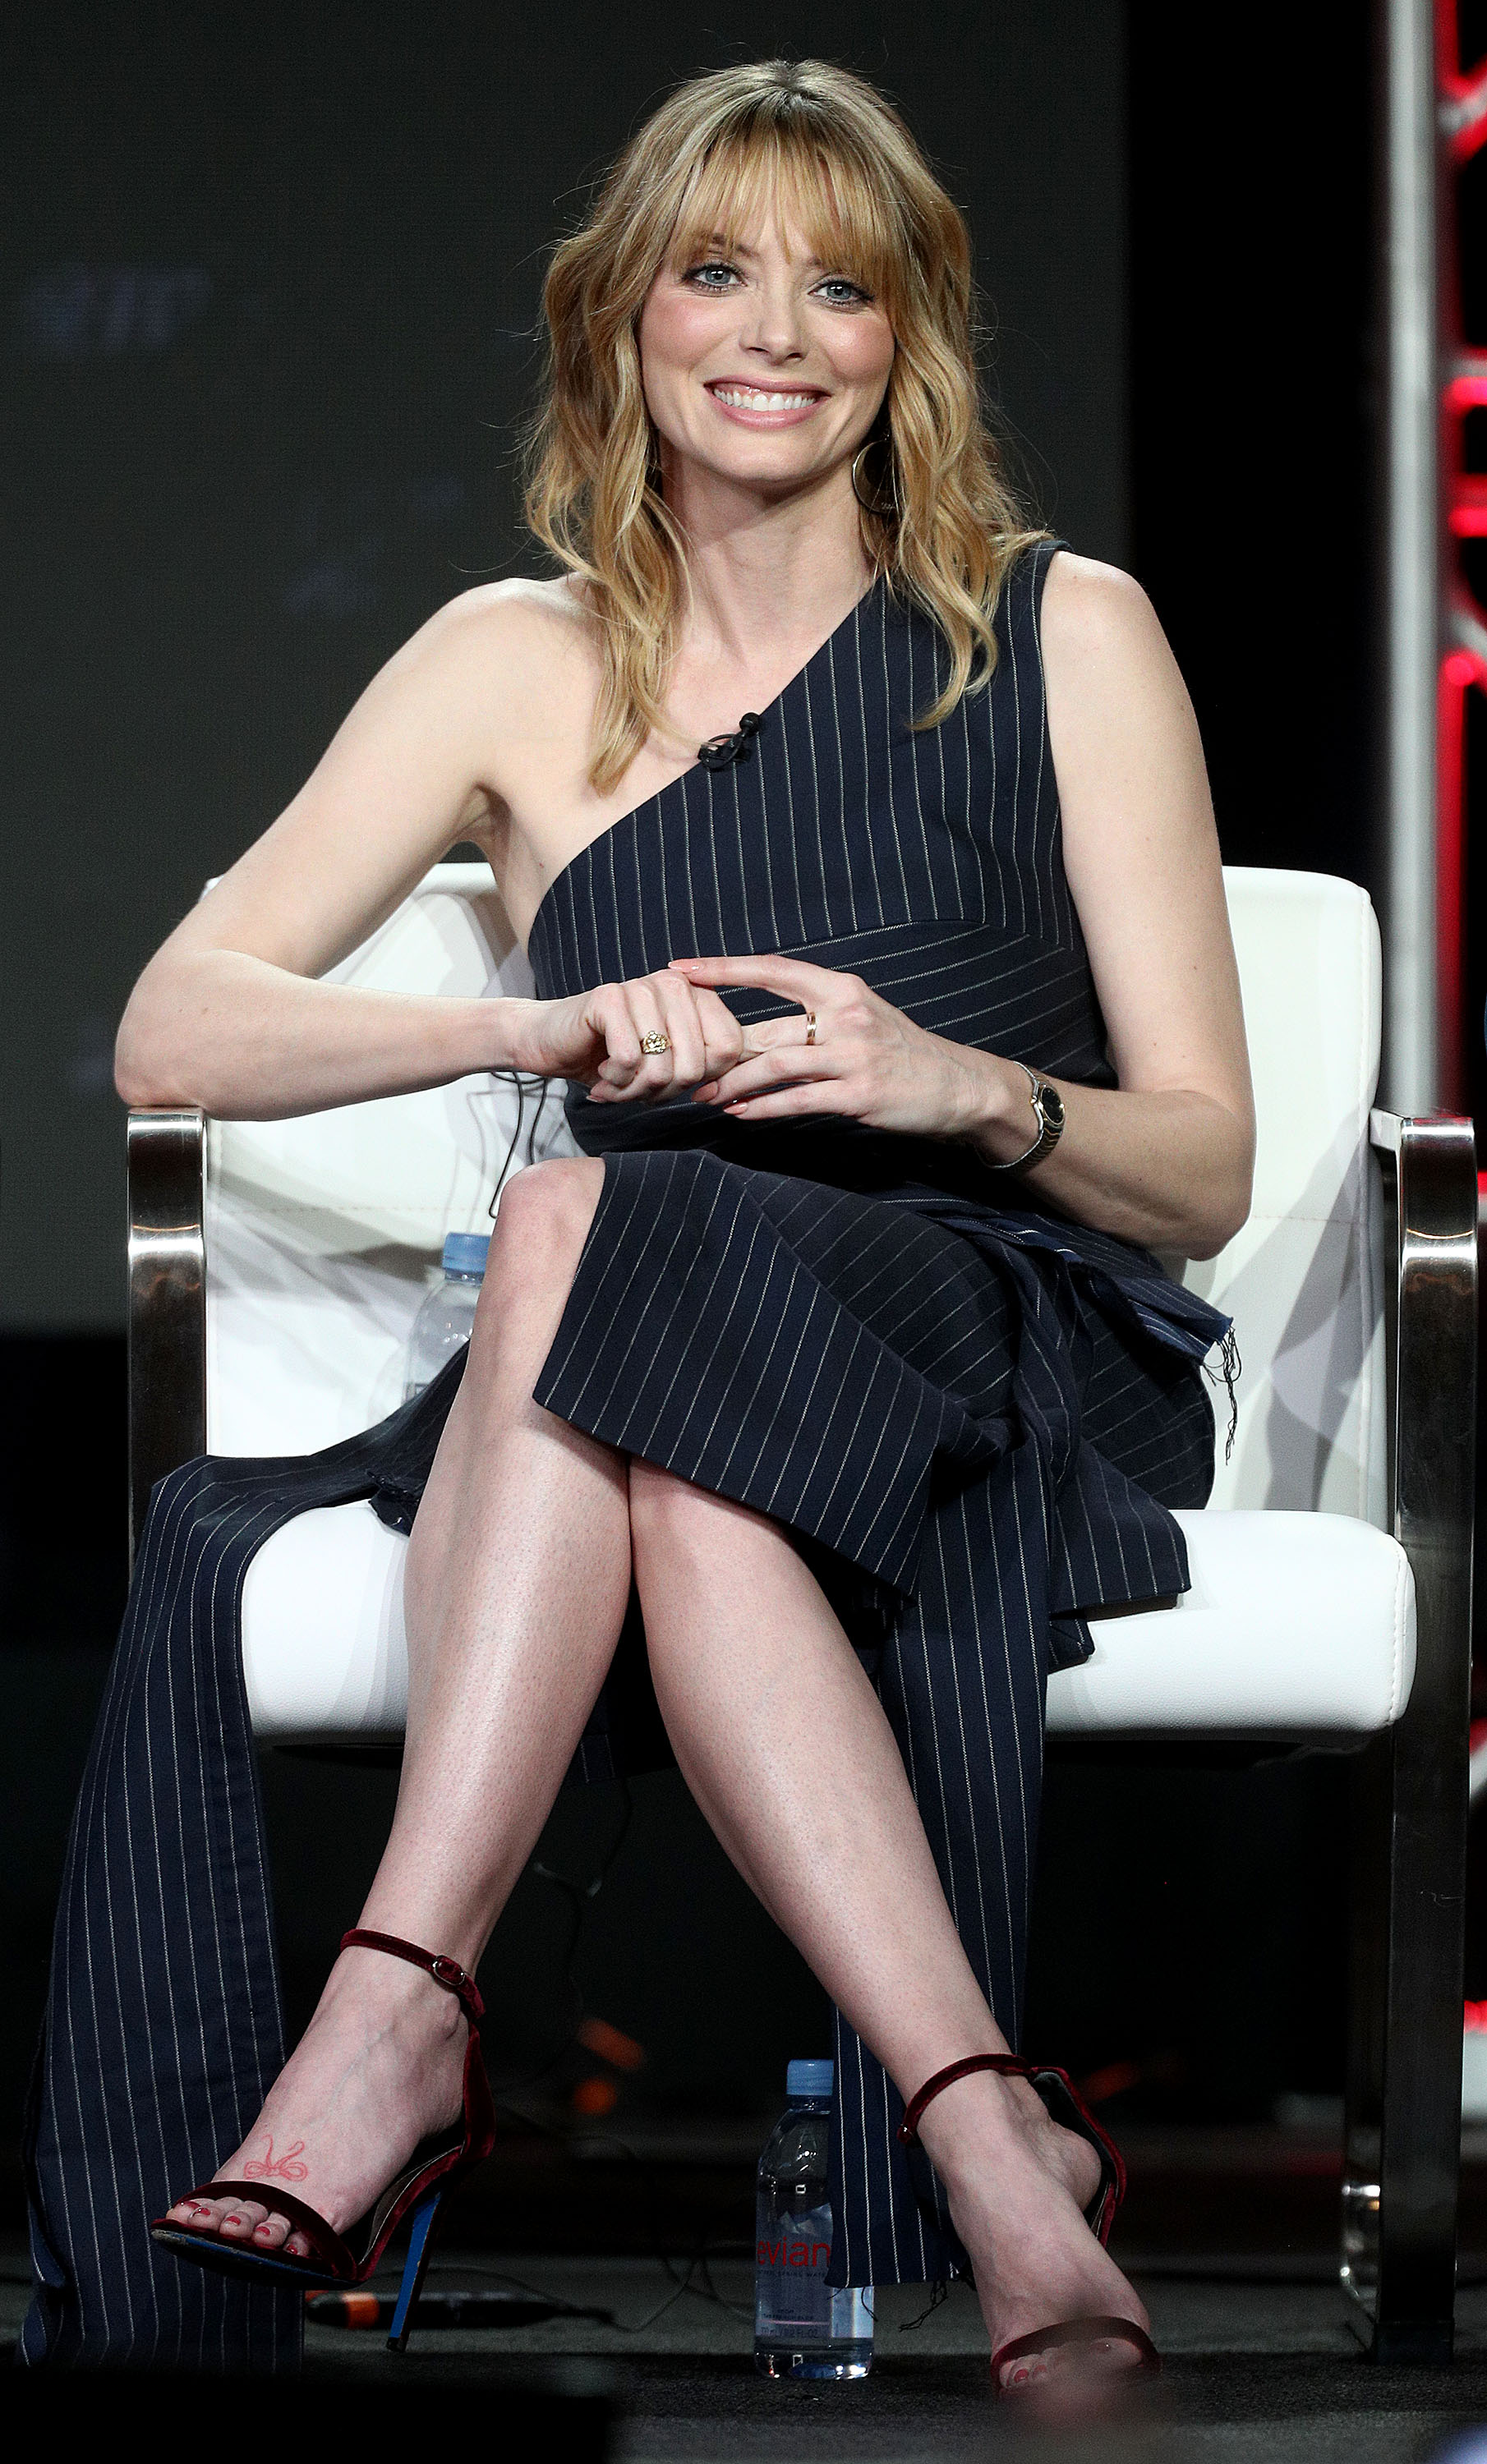 April Bowlby of the television show 'Doom Patrol' speaks during the Warner Bros. segment of the 2019 Winter Television Critics Association Press Tour at The Langham Huntington, Pasadena, California. (Photo by Frederick M. Brown/Getty Images)